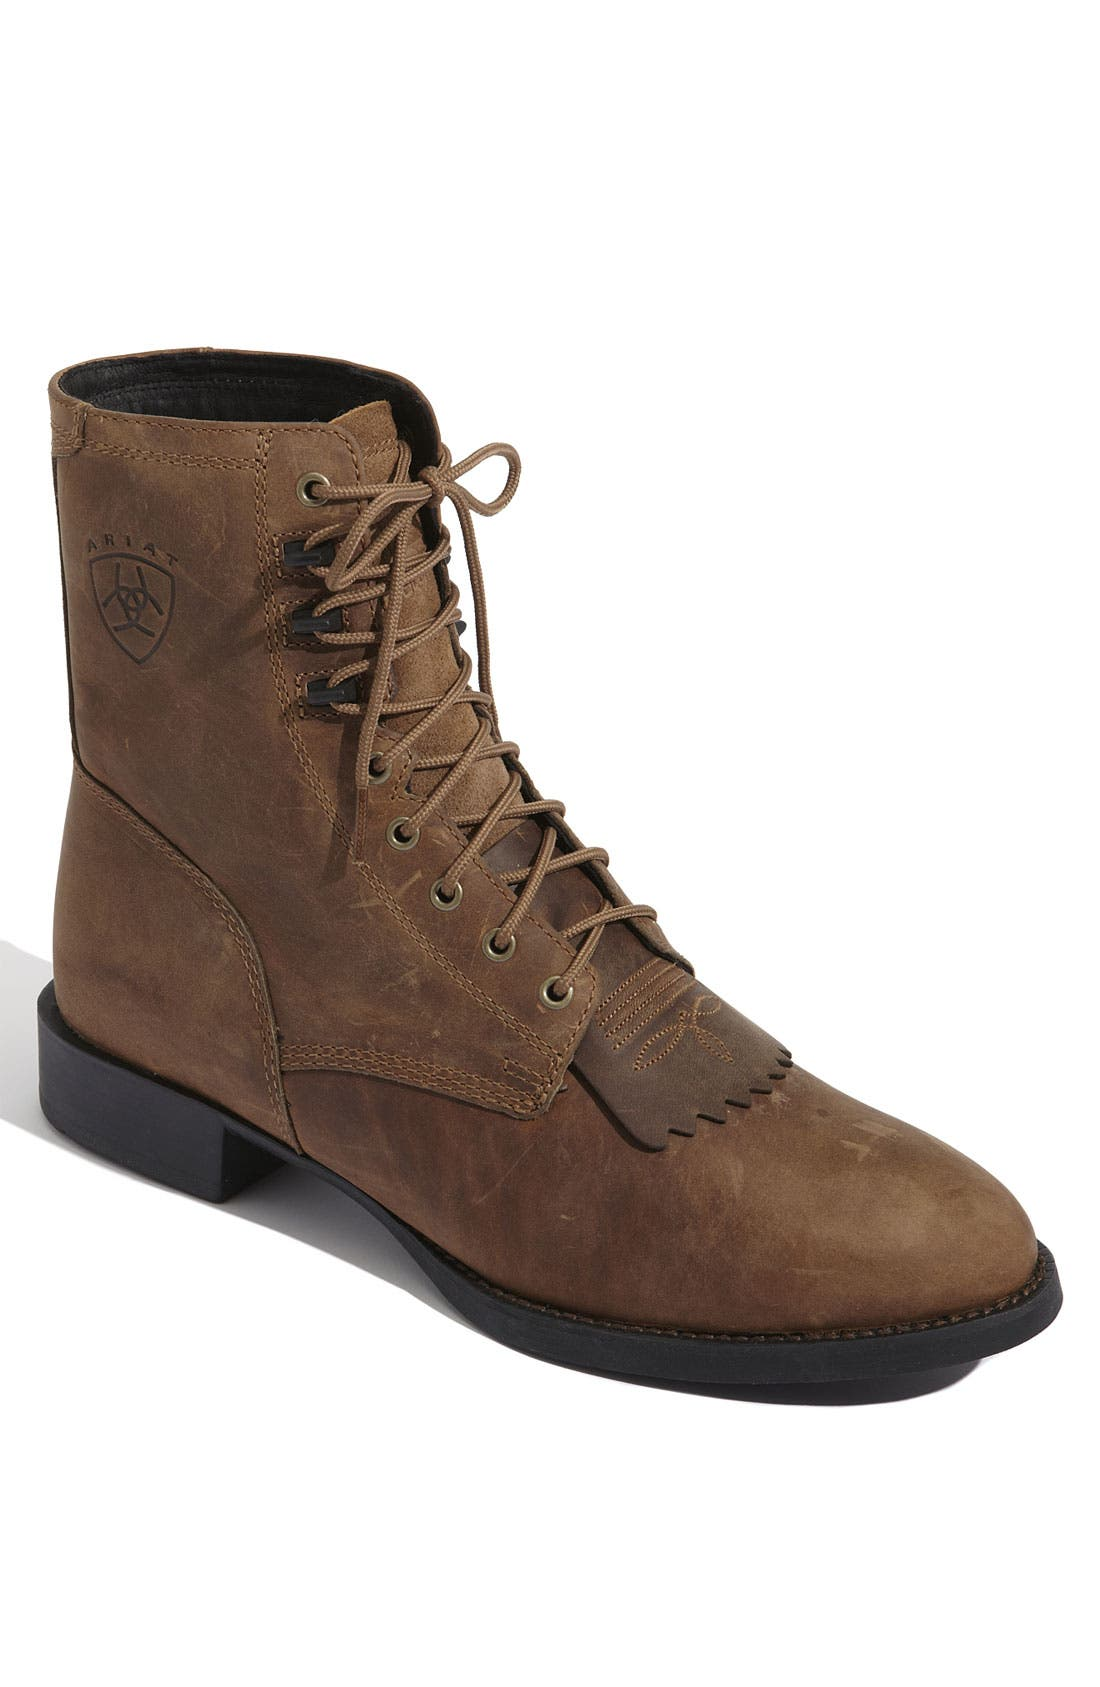 Alternate Image 1 Selected - Ariat 'Heritage Lacer' Boot (Online Only) (Men)